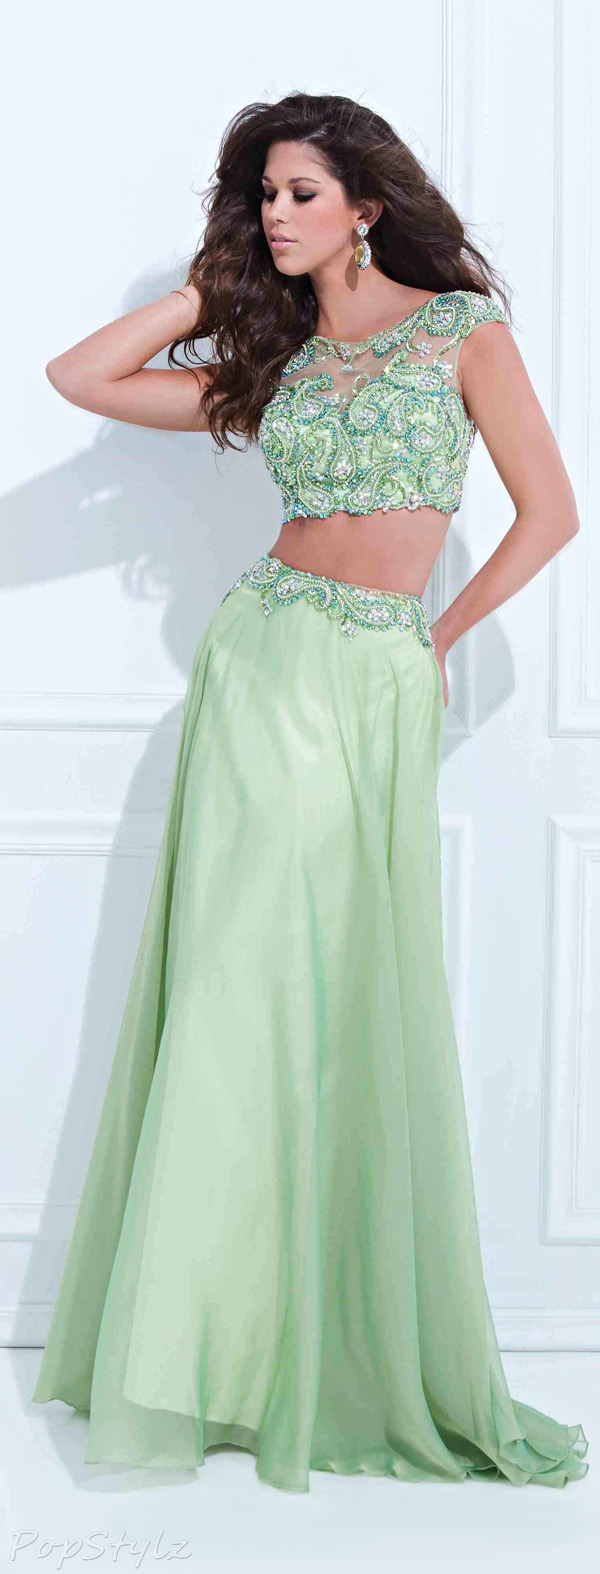 Tony Bowls TBE11452 Evening Gown